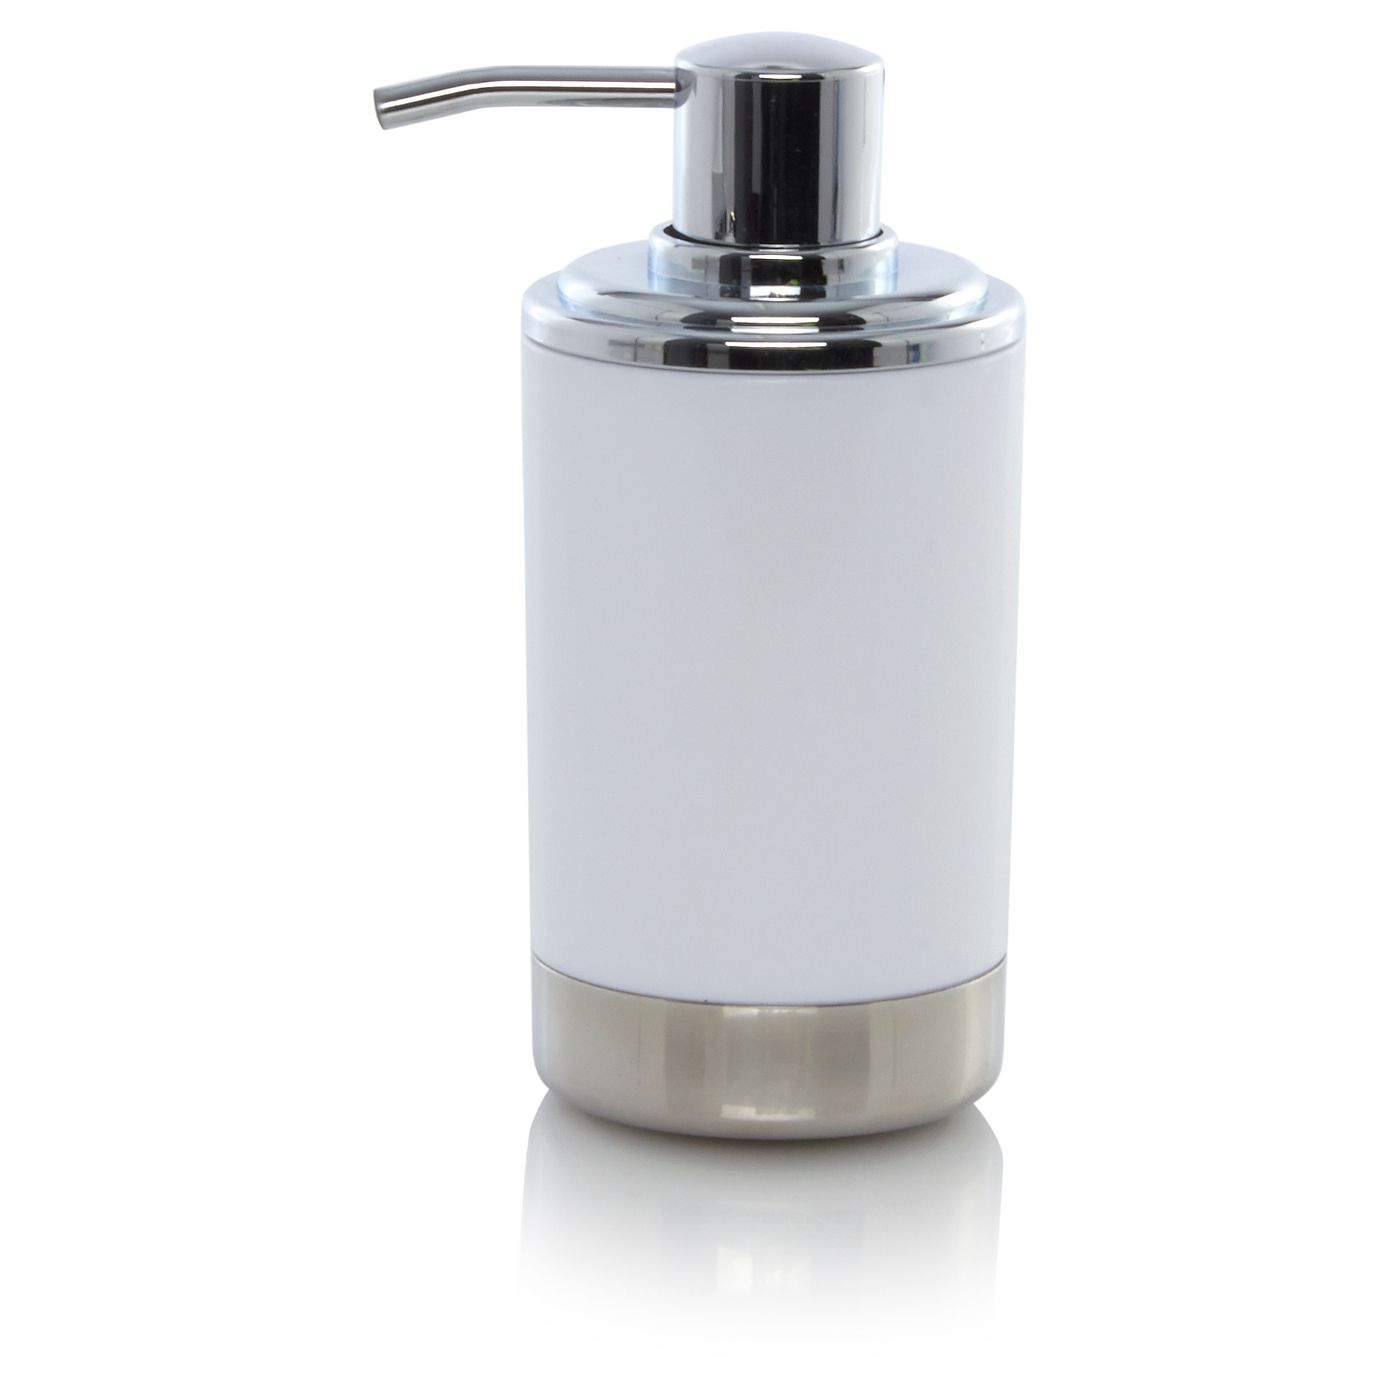 George Home White And Chrome Soap Dispenser  Bathroom Accessories Cool Chrome Bathroom Accessories Design Inspiration